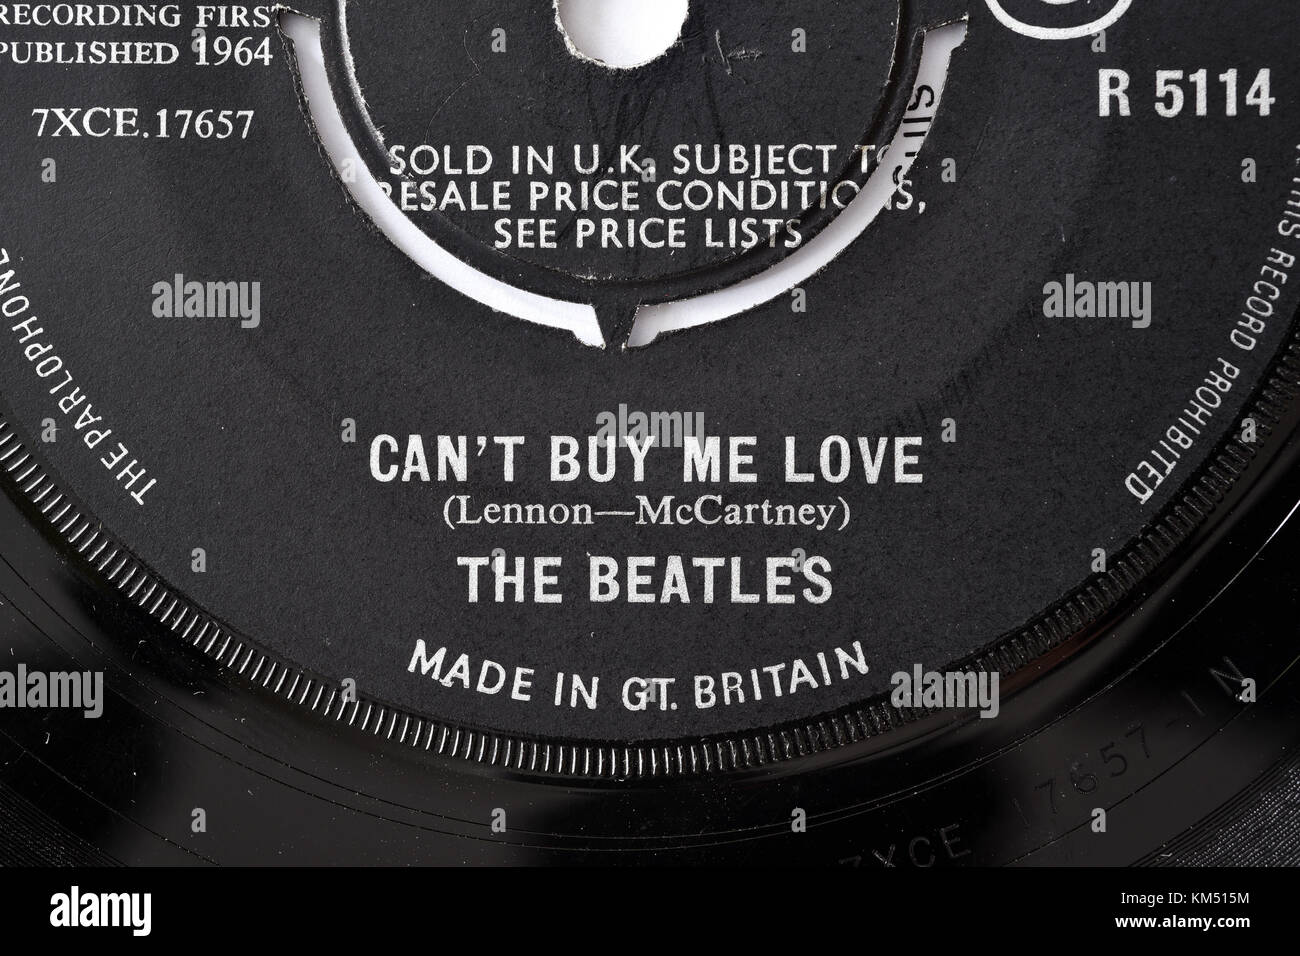 Beatles Can't Buy Me Love seven inch single label details - Stock Image